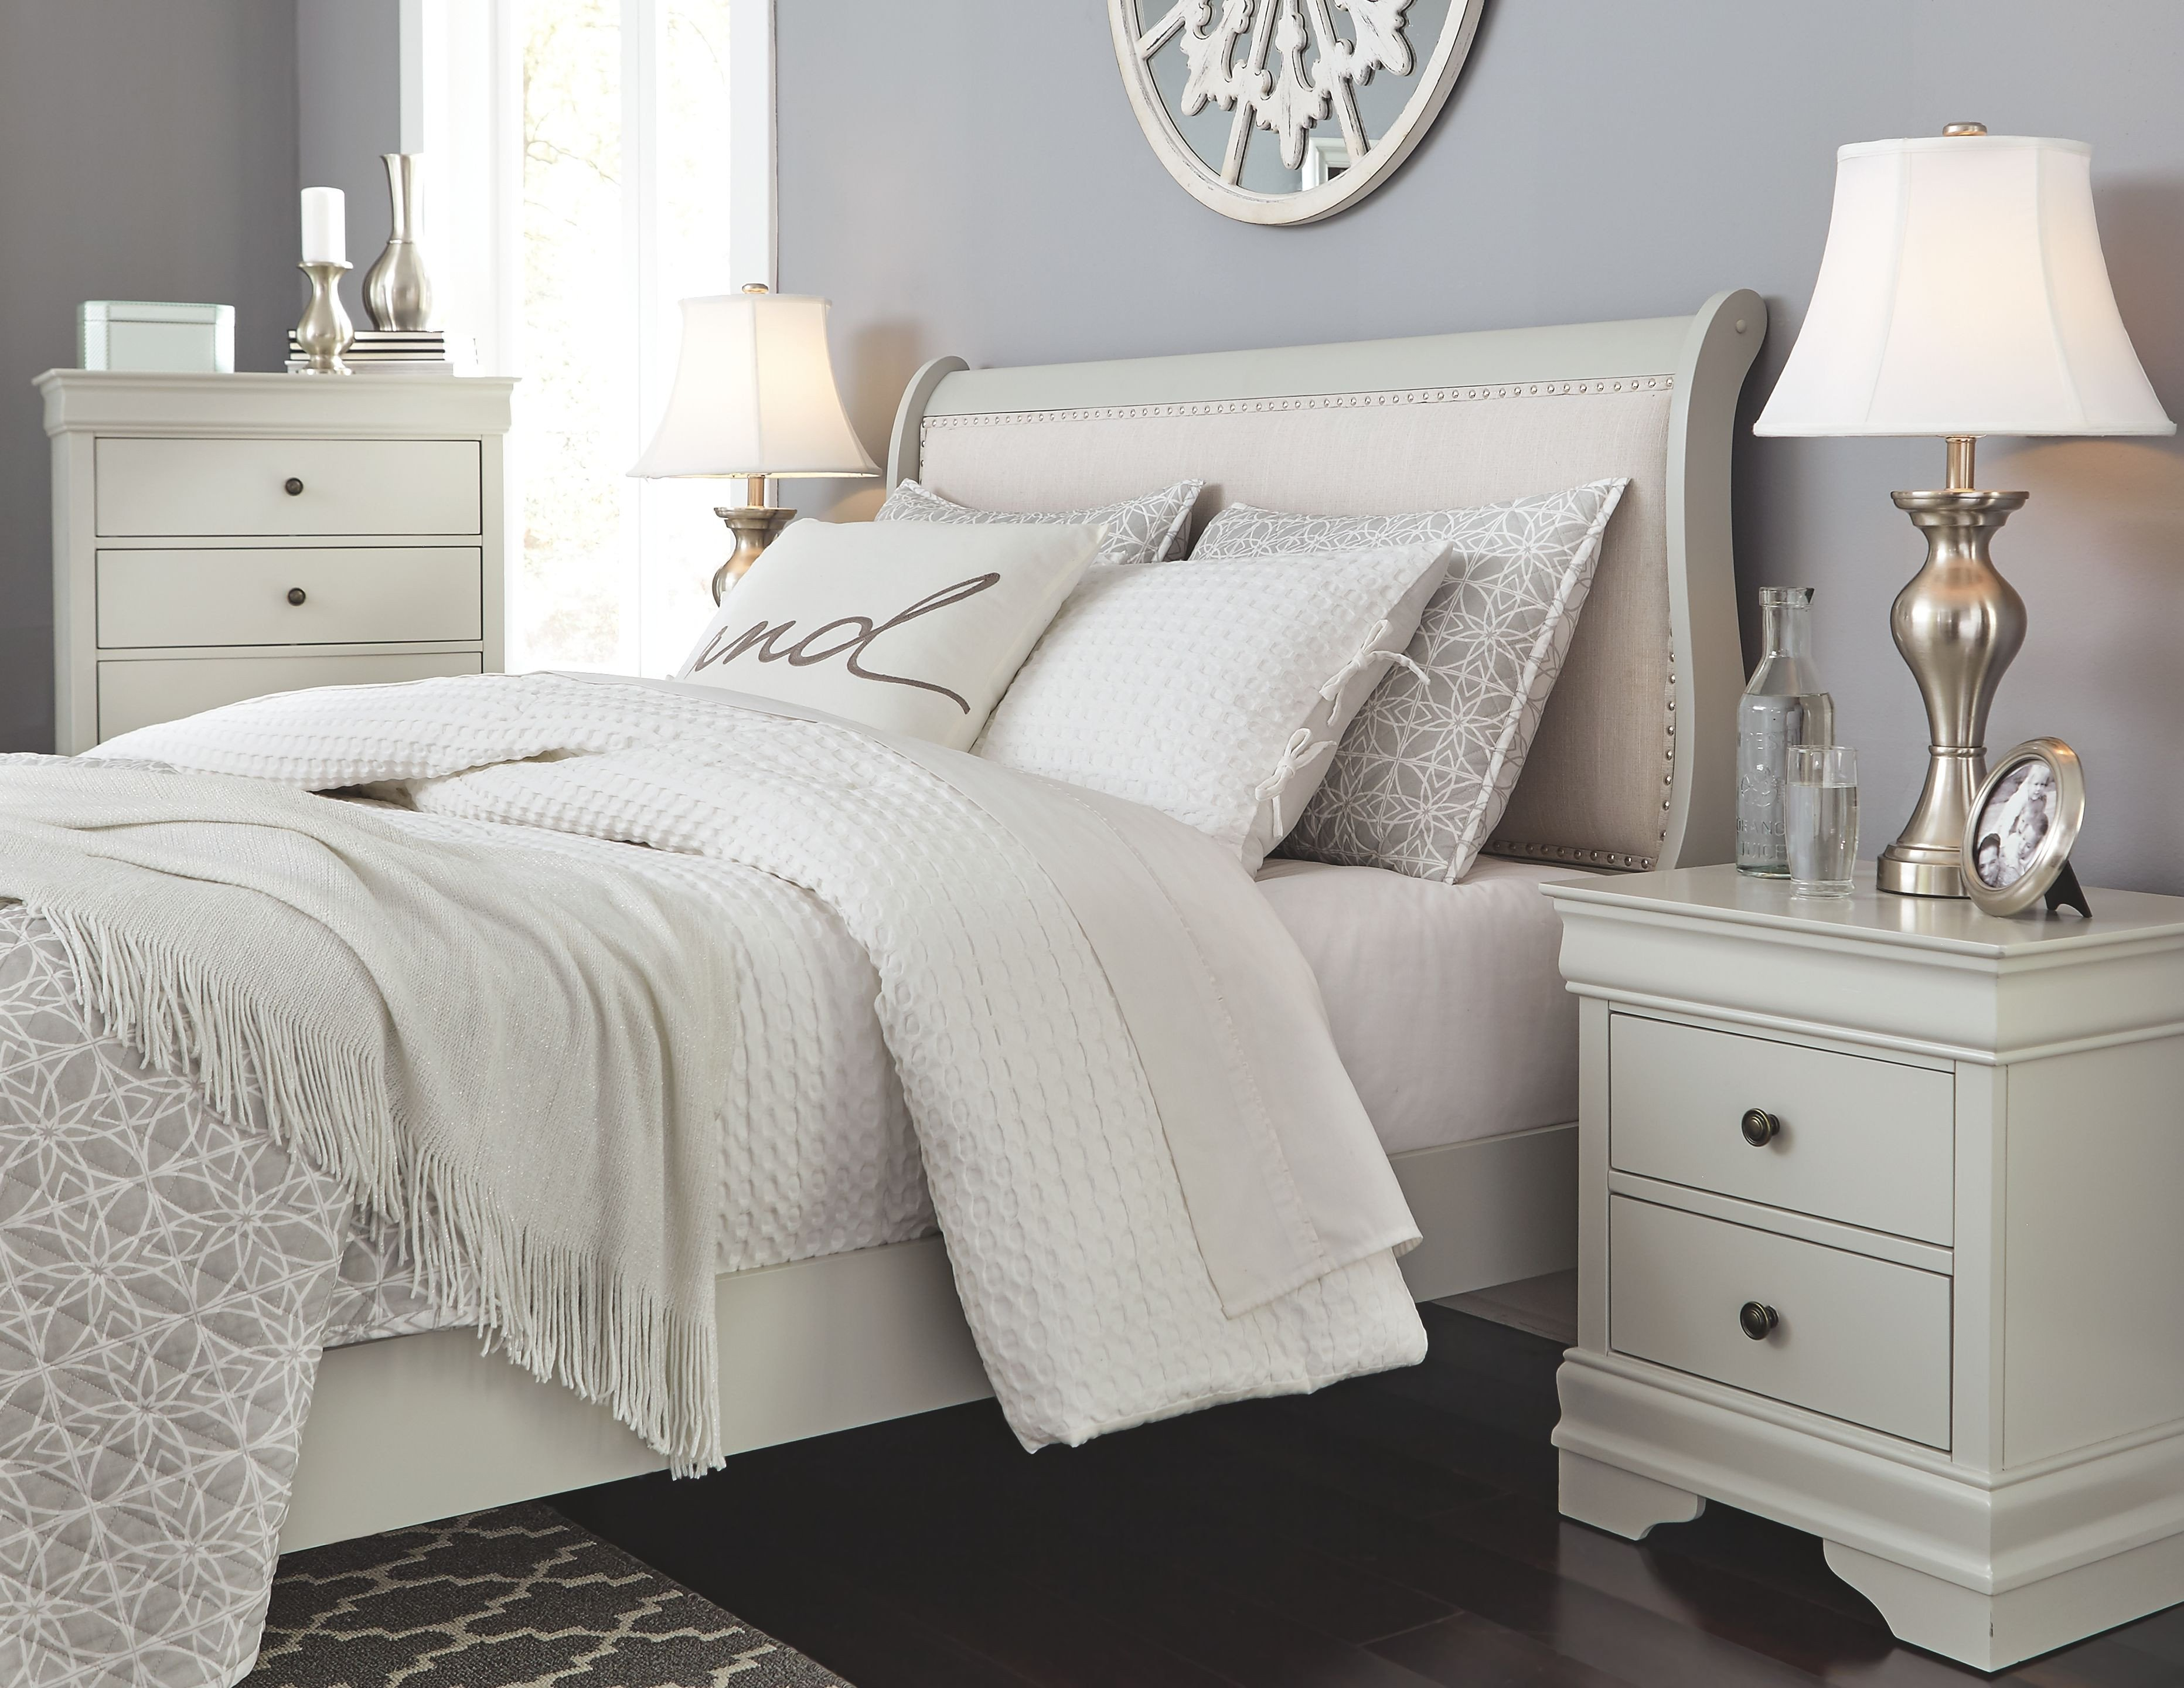 White Full Size Bedroom Set Best Of Jorstad Full Bed with 2 Nightstands Gray